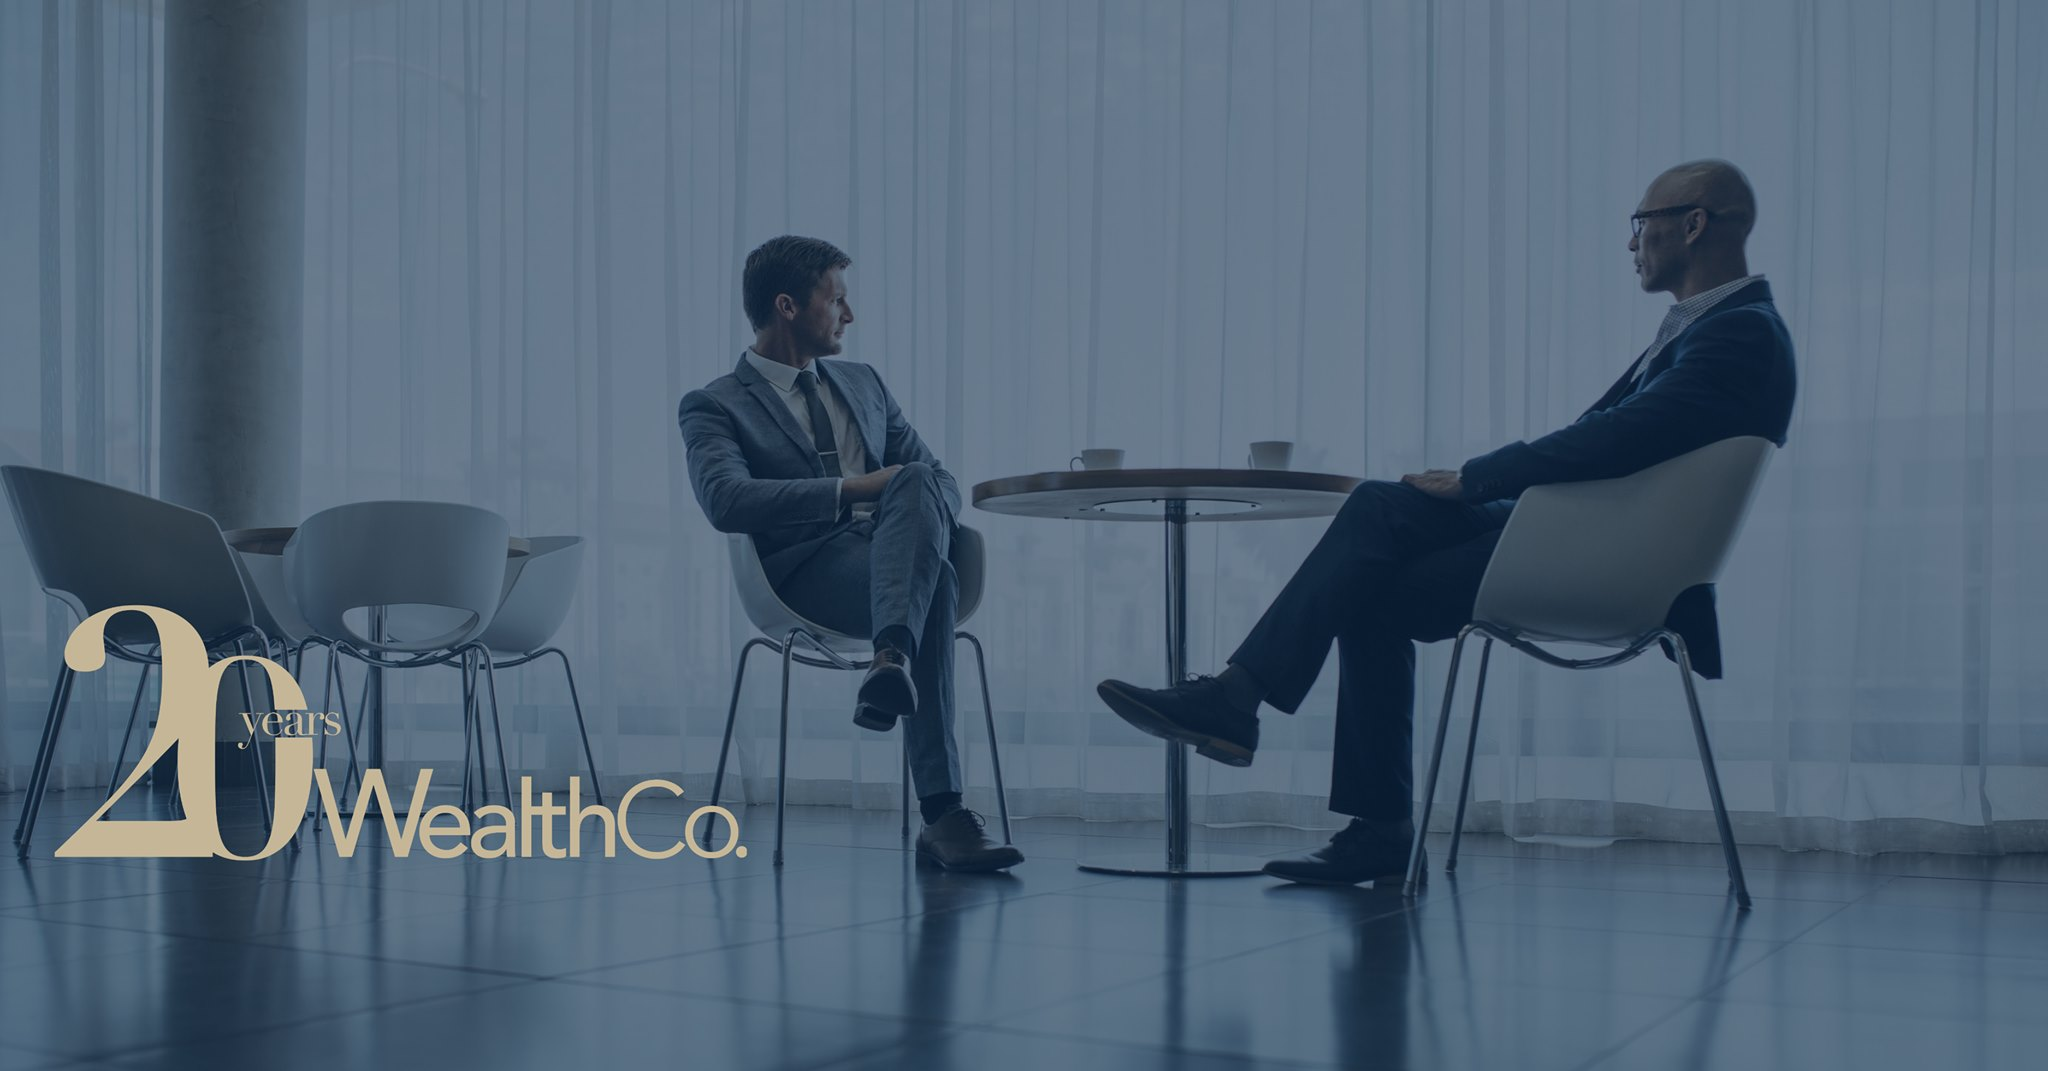 Wealthco Financial Services